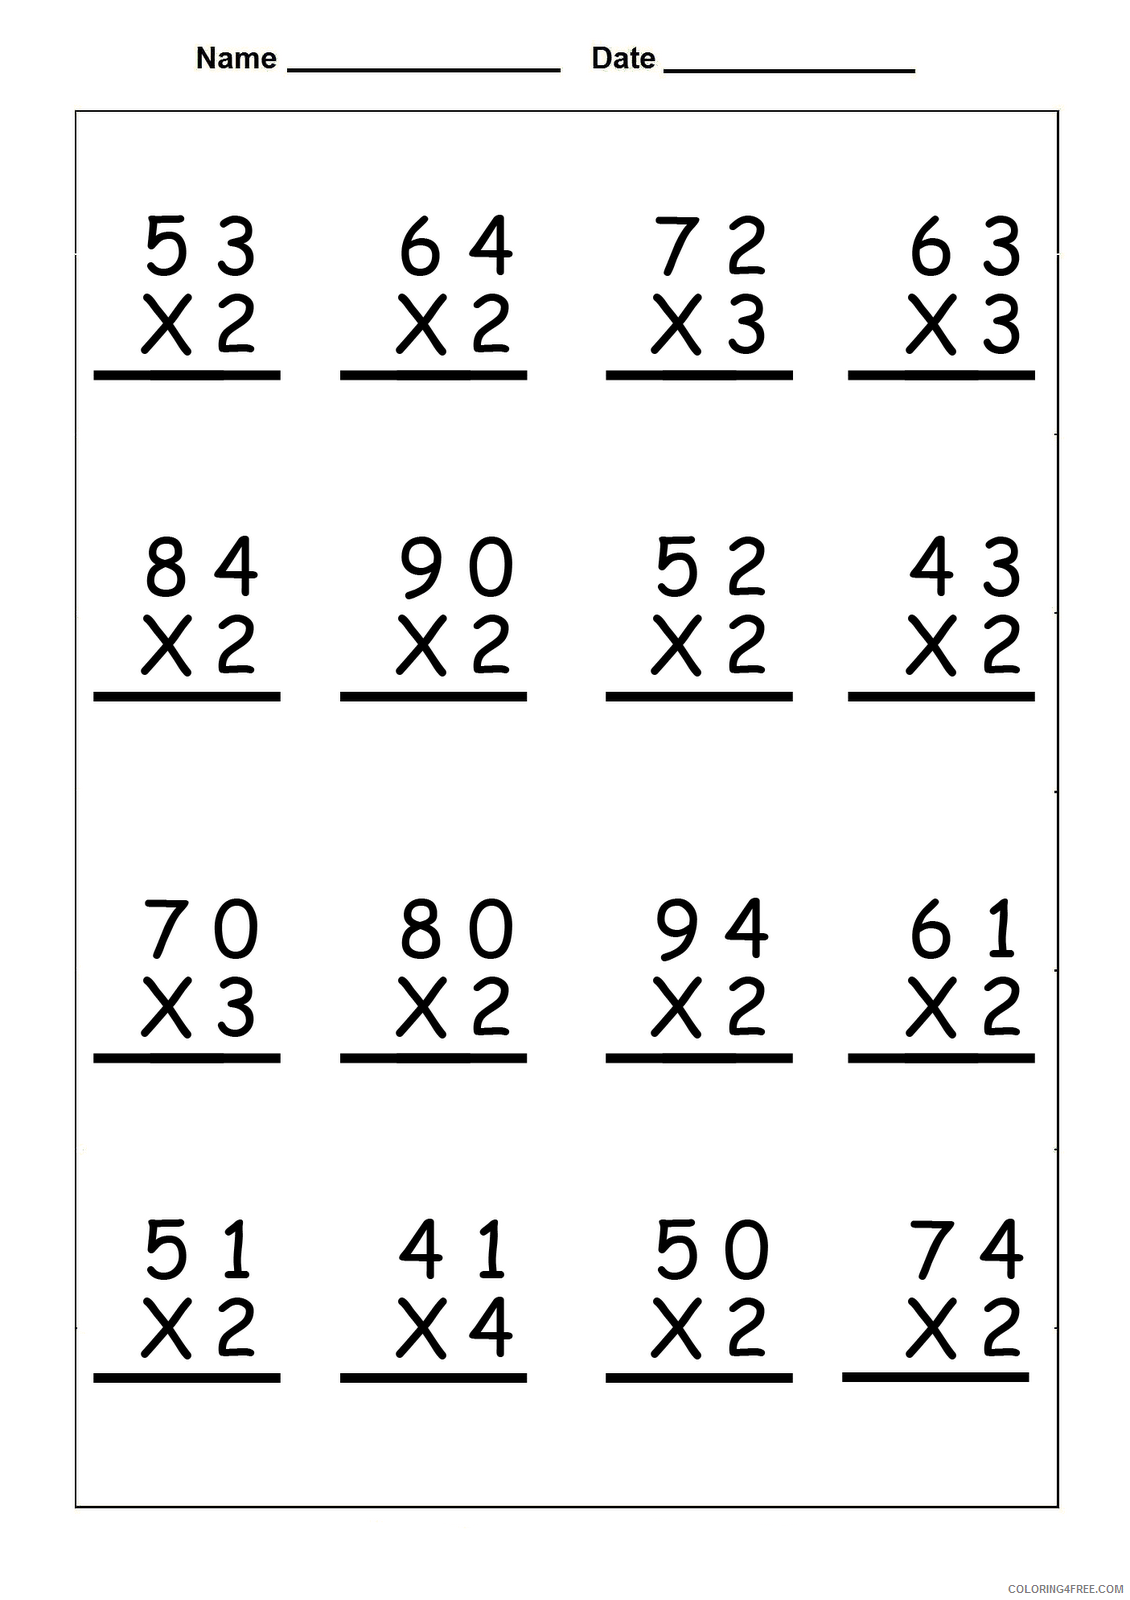 hight resolution of 4th Grade Coloring Pages Educational Math Worksheets Multiplication 2020  0347 Coloring4free - Coloring4Free.com